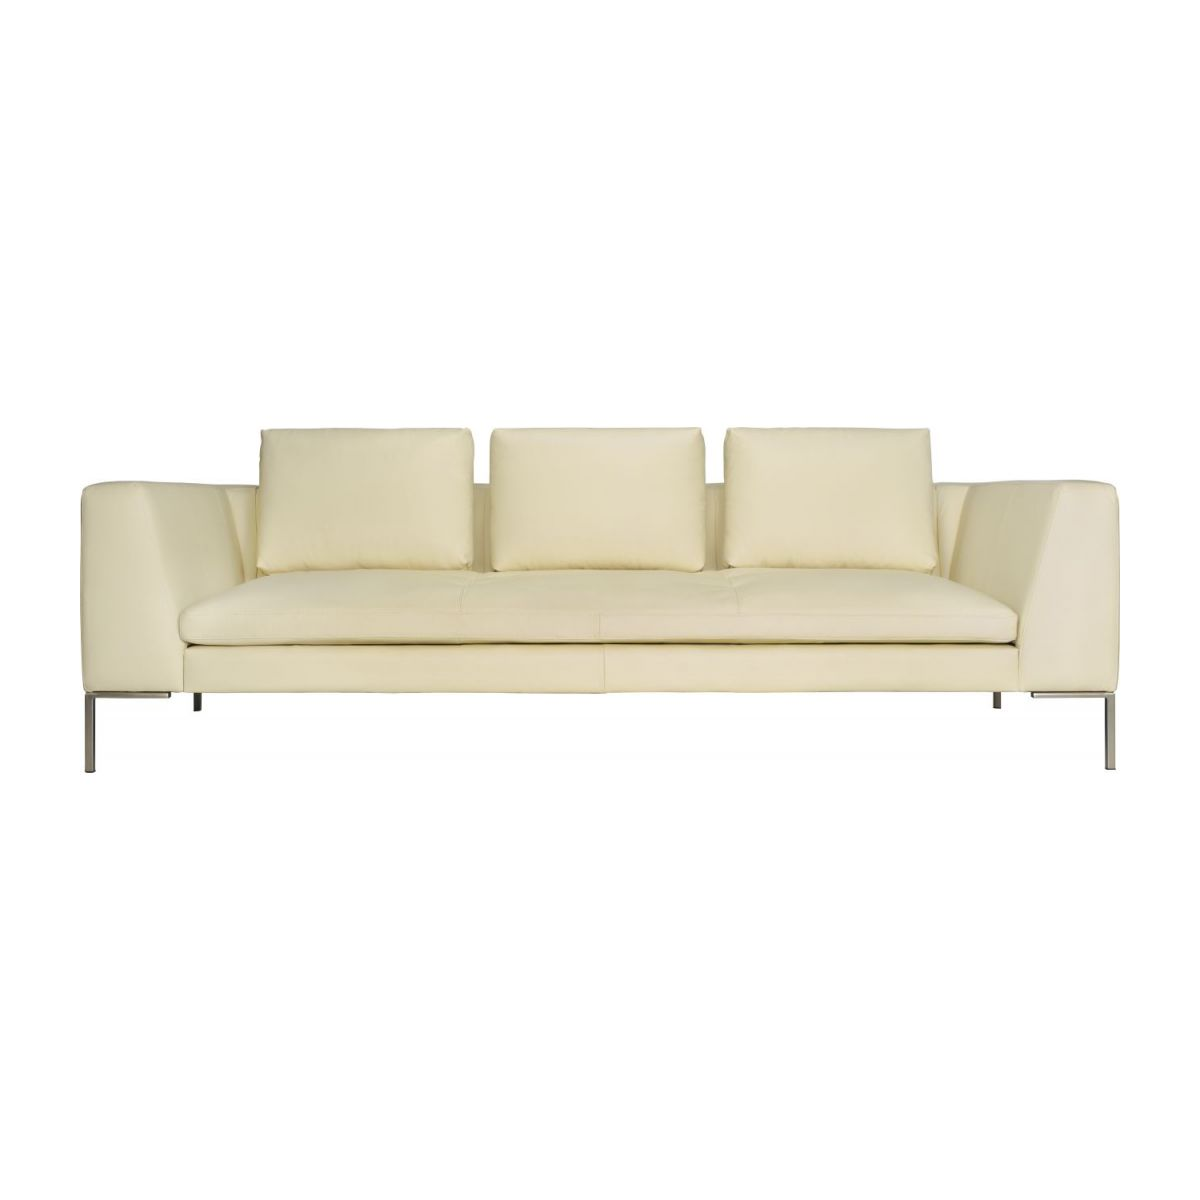 3 seater sofa in Eton veined leather, cream n°3